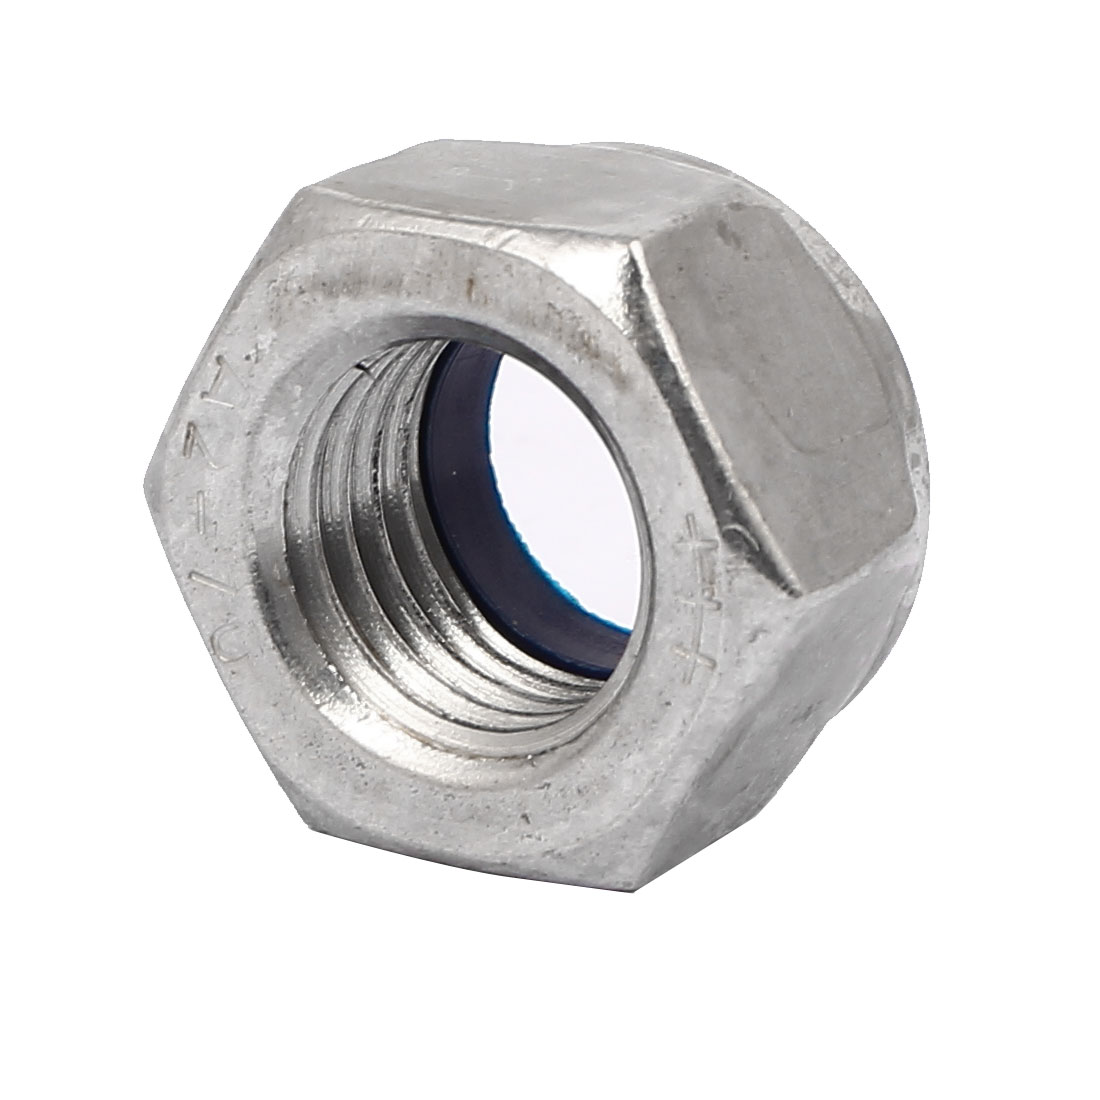 304 Stainless Steel Nylock Nylon Insert Hex Lock Nuts Silver Tone M24